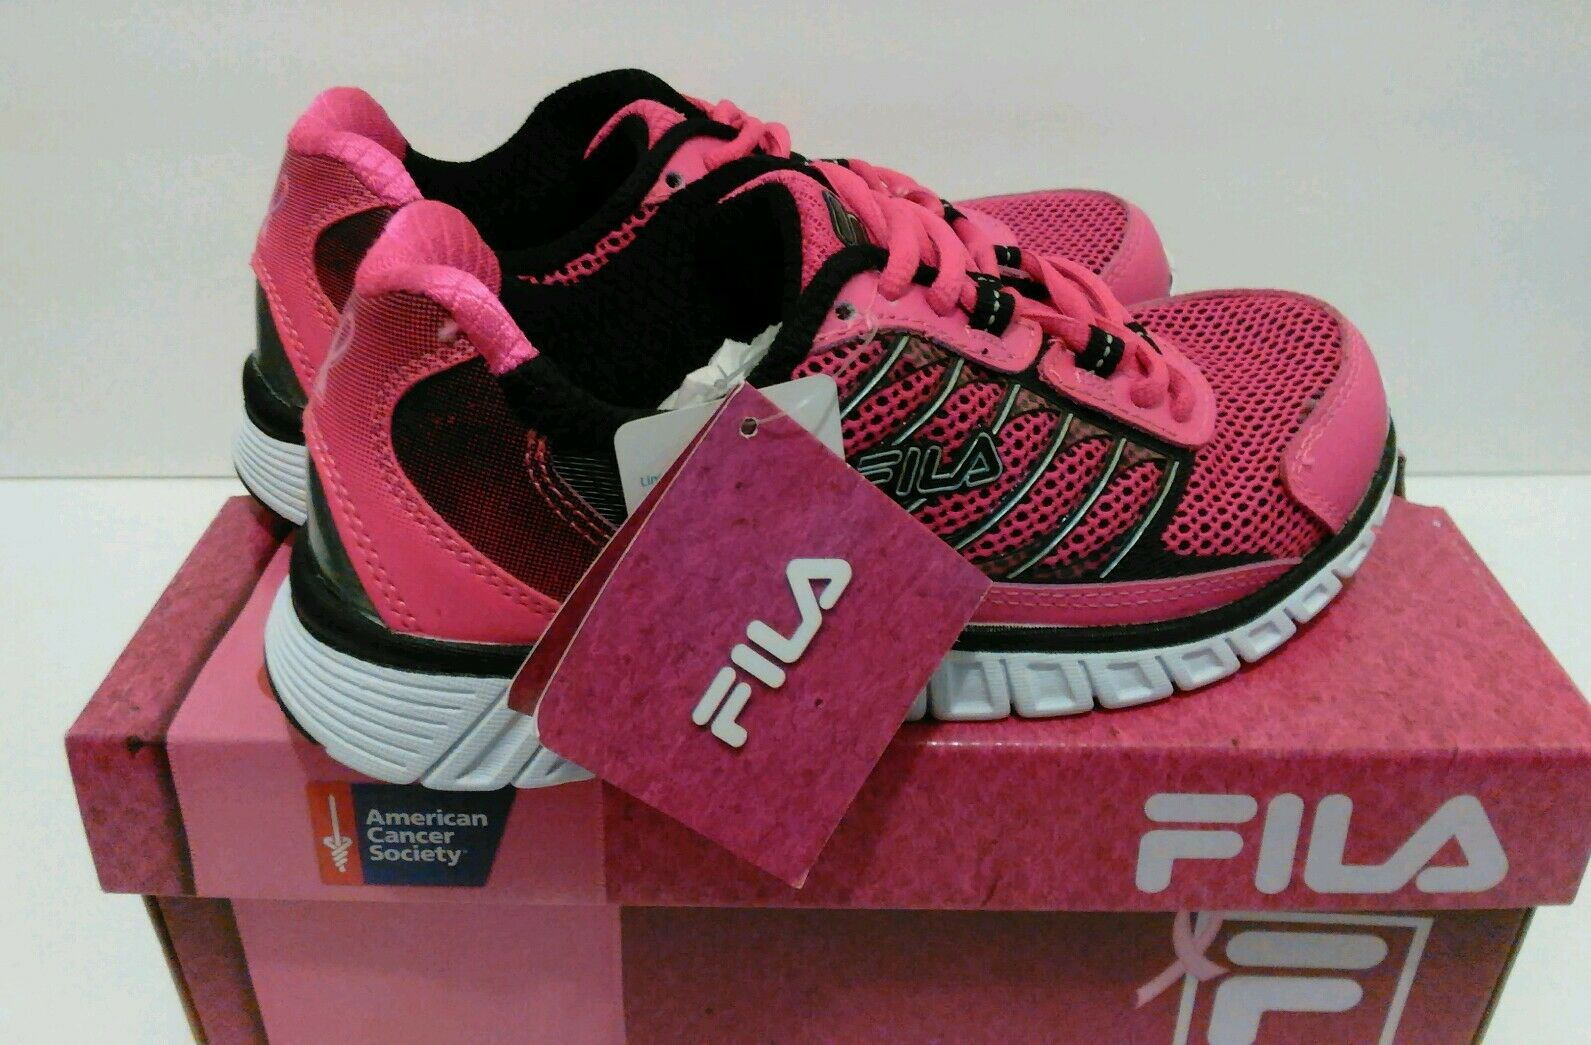 NEW Women's FILA Hyper Split 4 BC Running Walking Shoes Price reduction Breast Cancer best-selling model of the brand